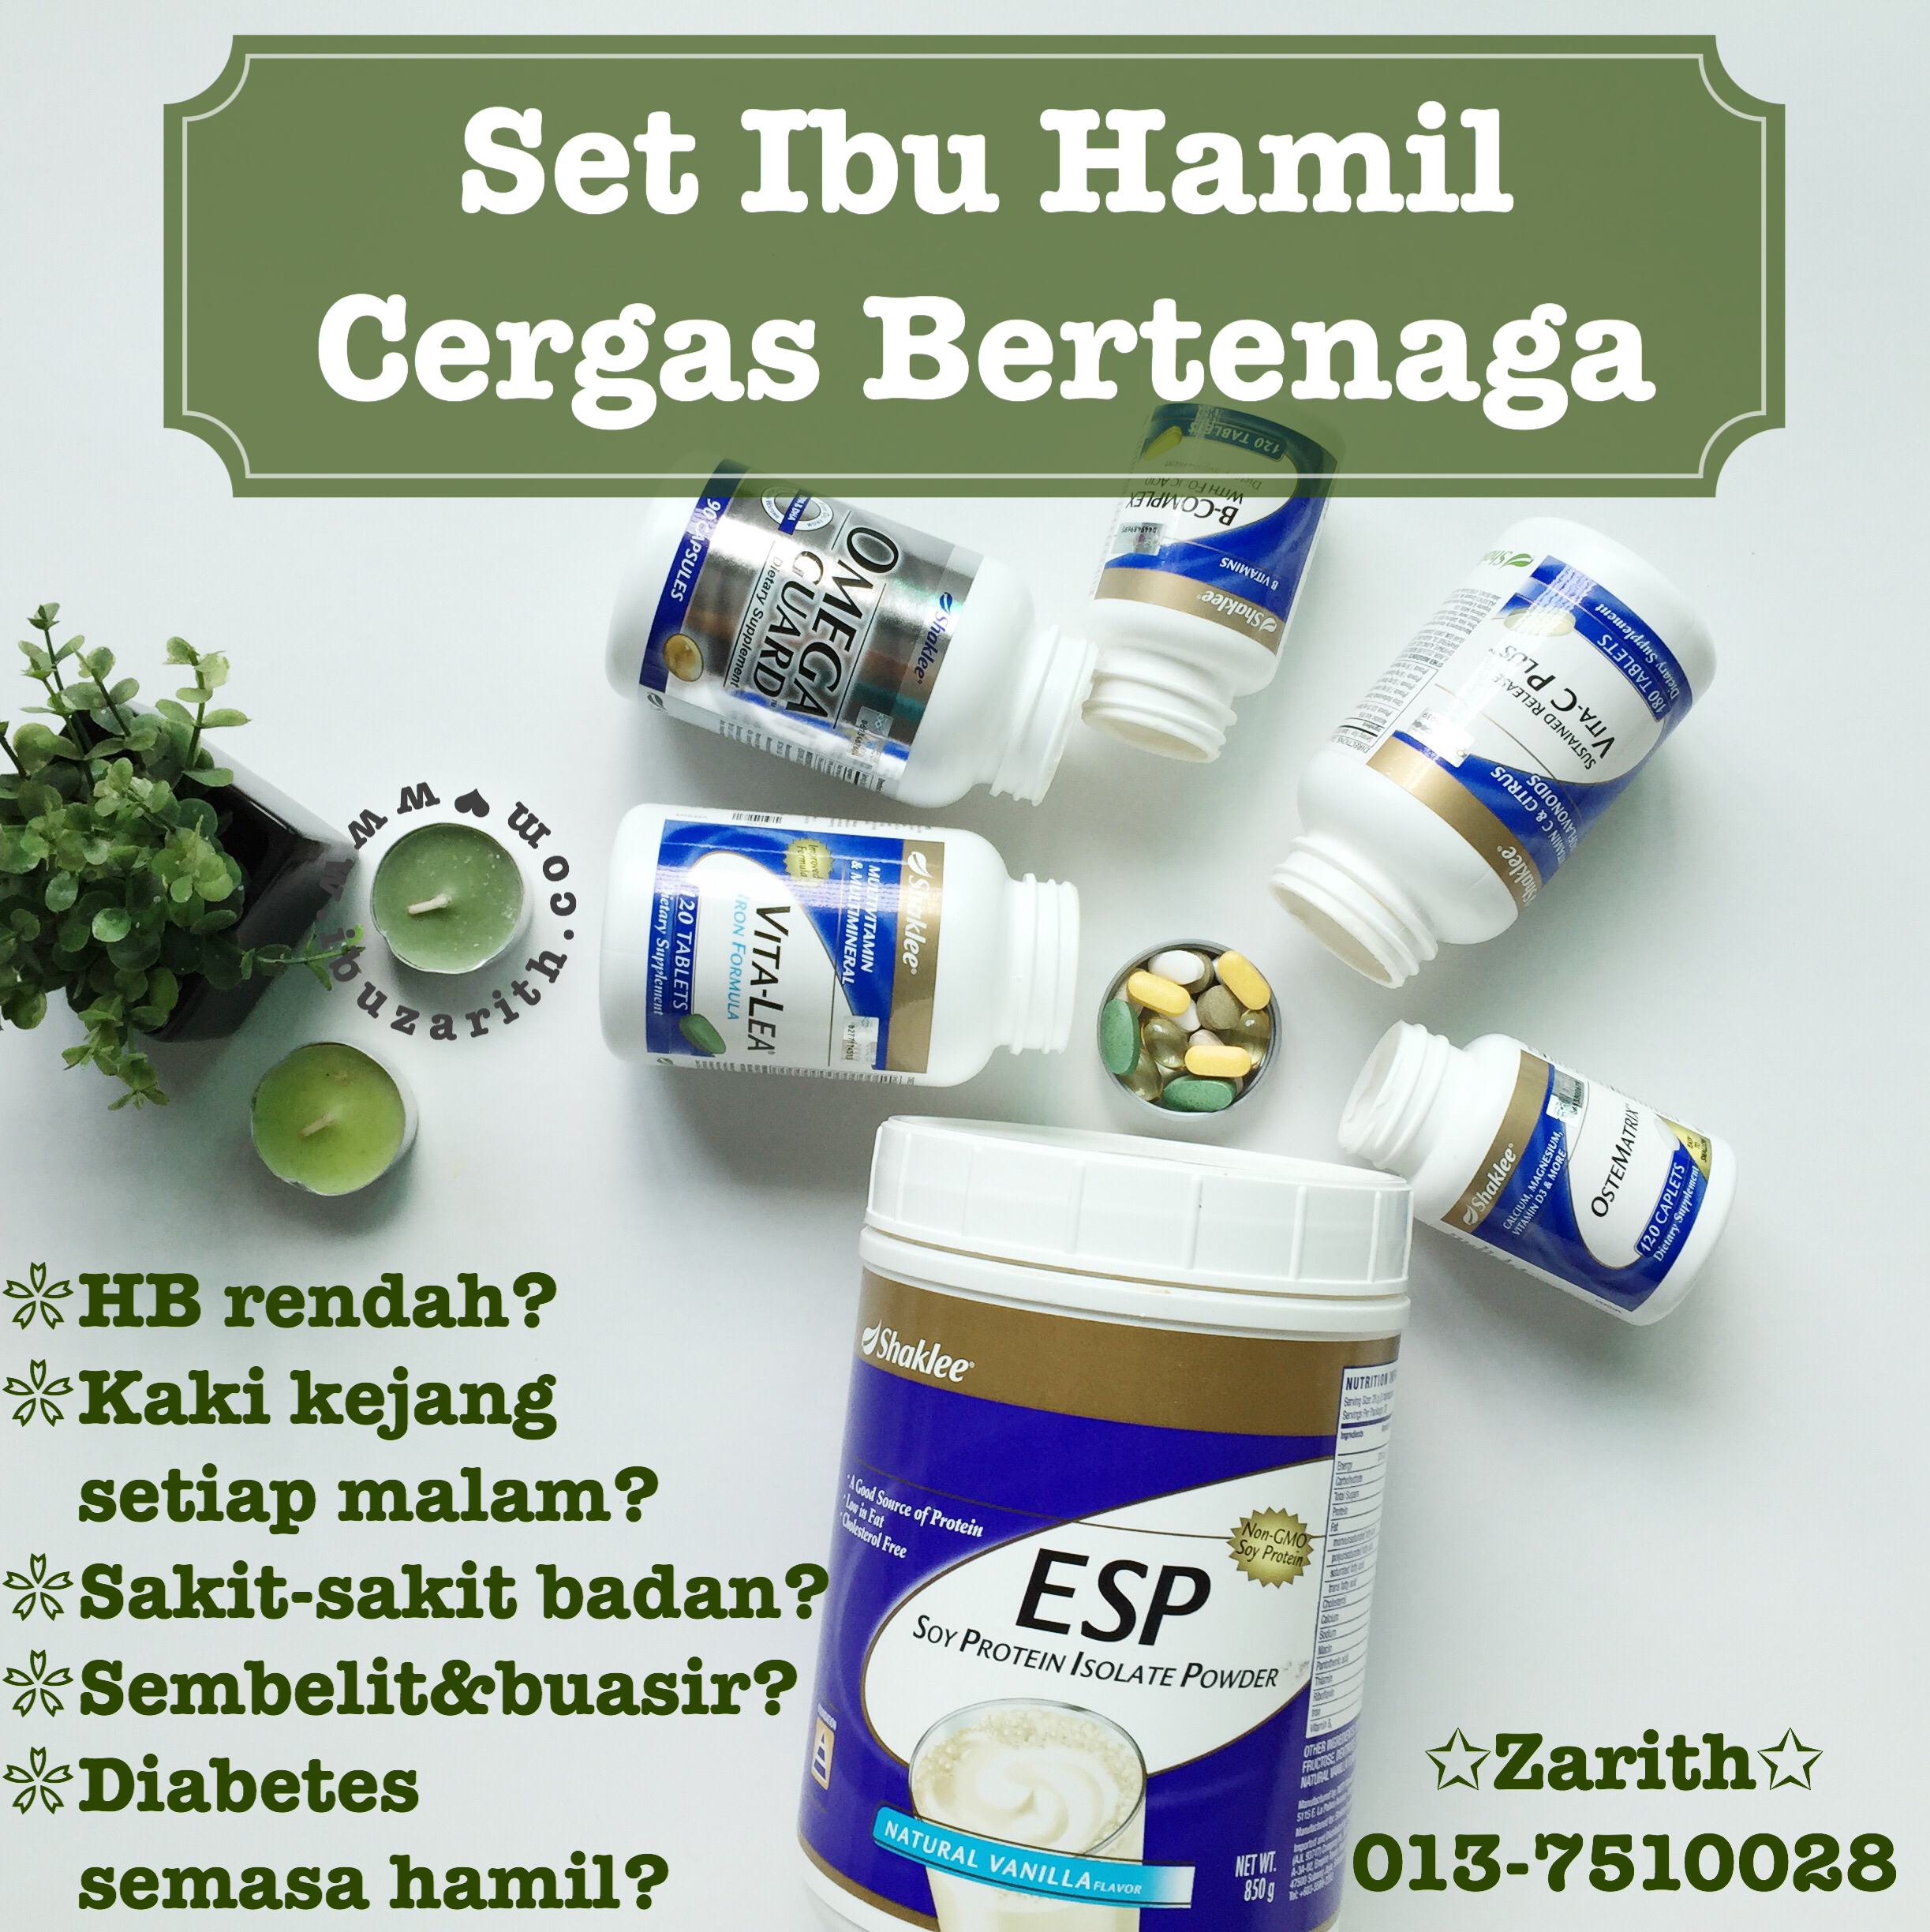 Set Ibu Hamil